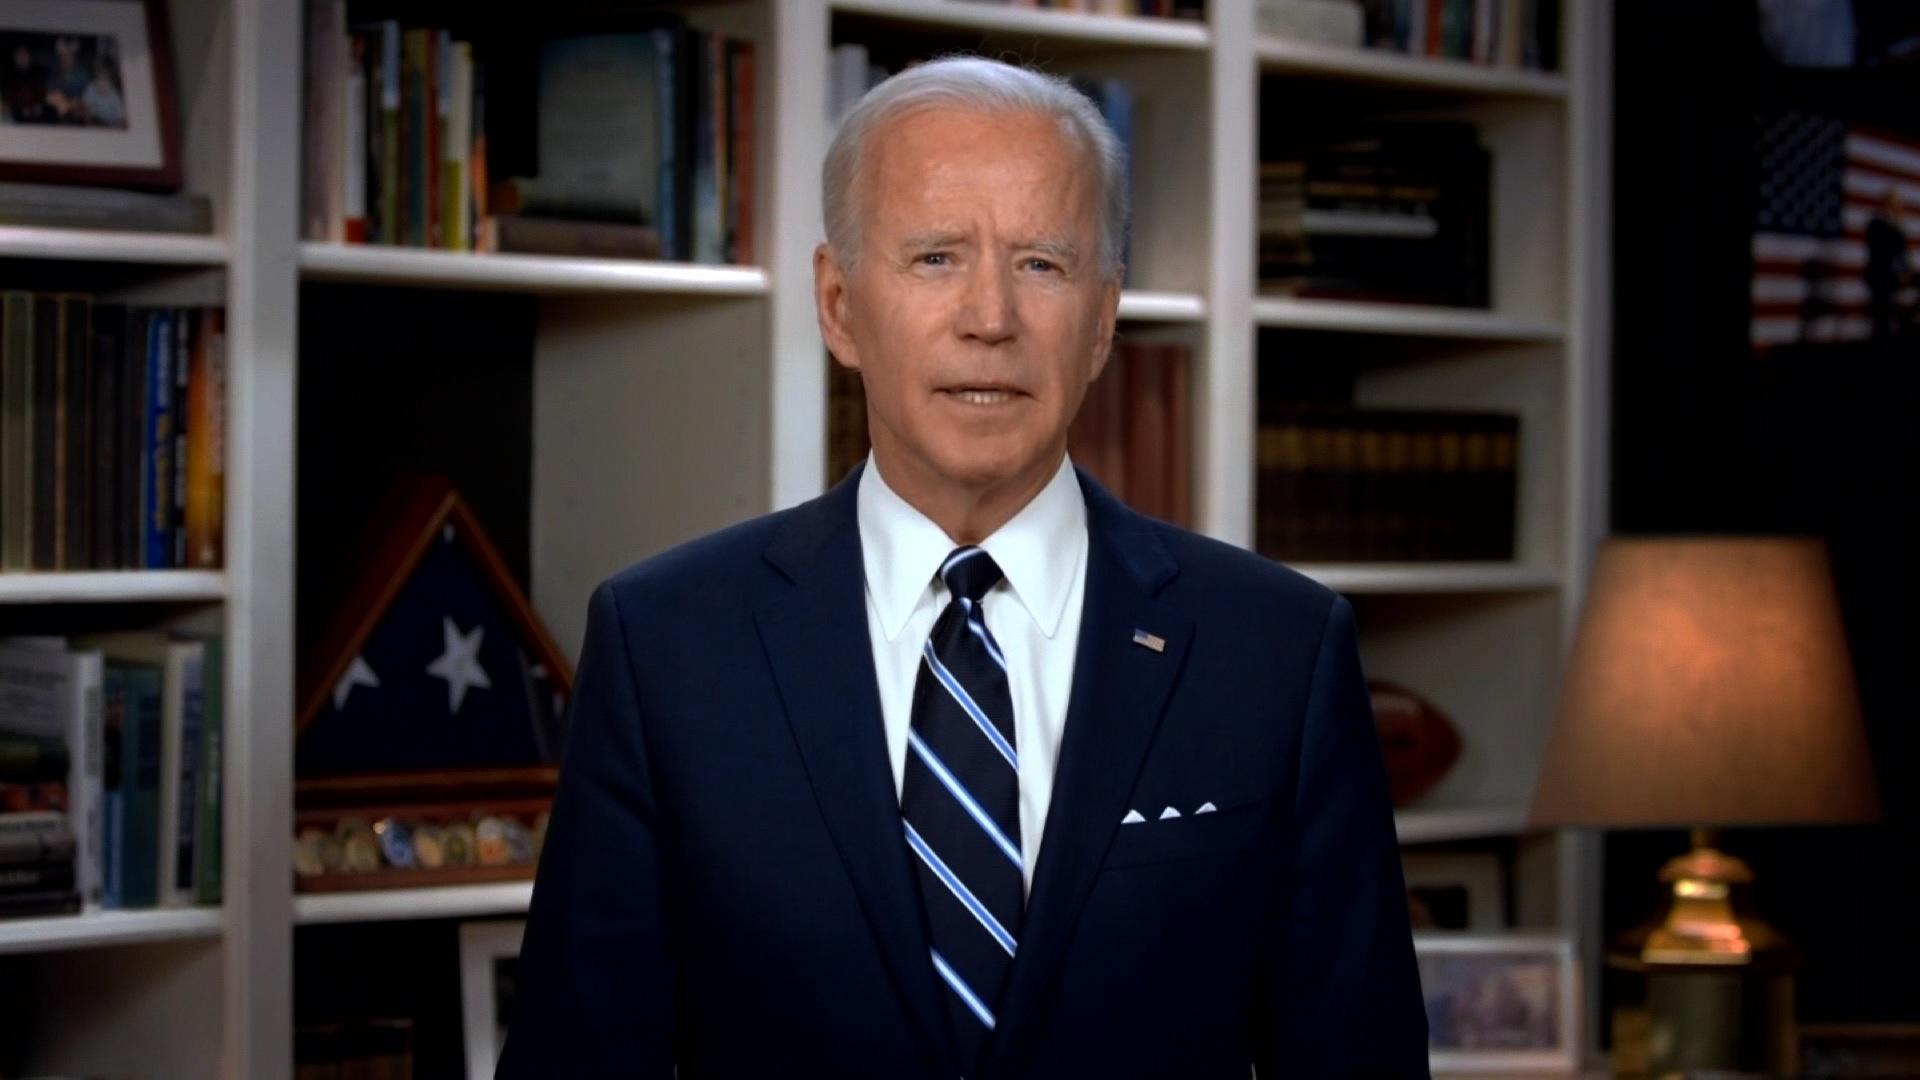 Former Vice President Joe Biden speaks over video at George Floyd's funeral at The Fountain of Praise church in Houston on June 9.